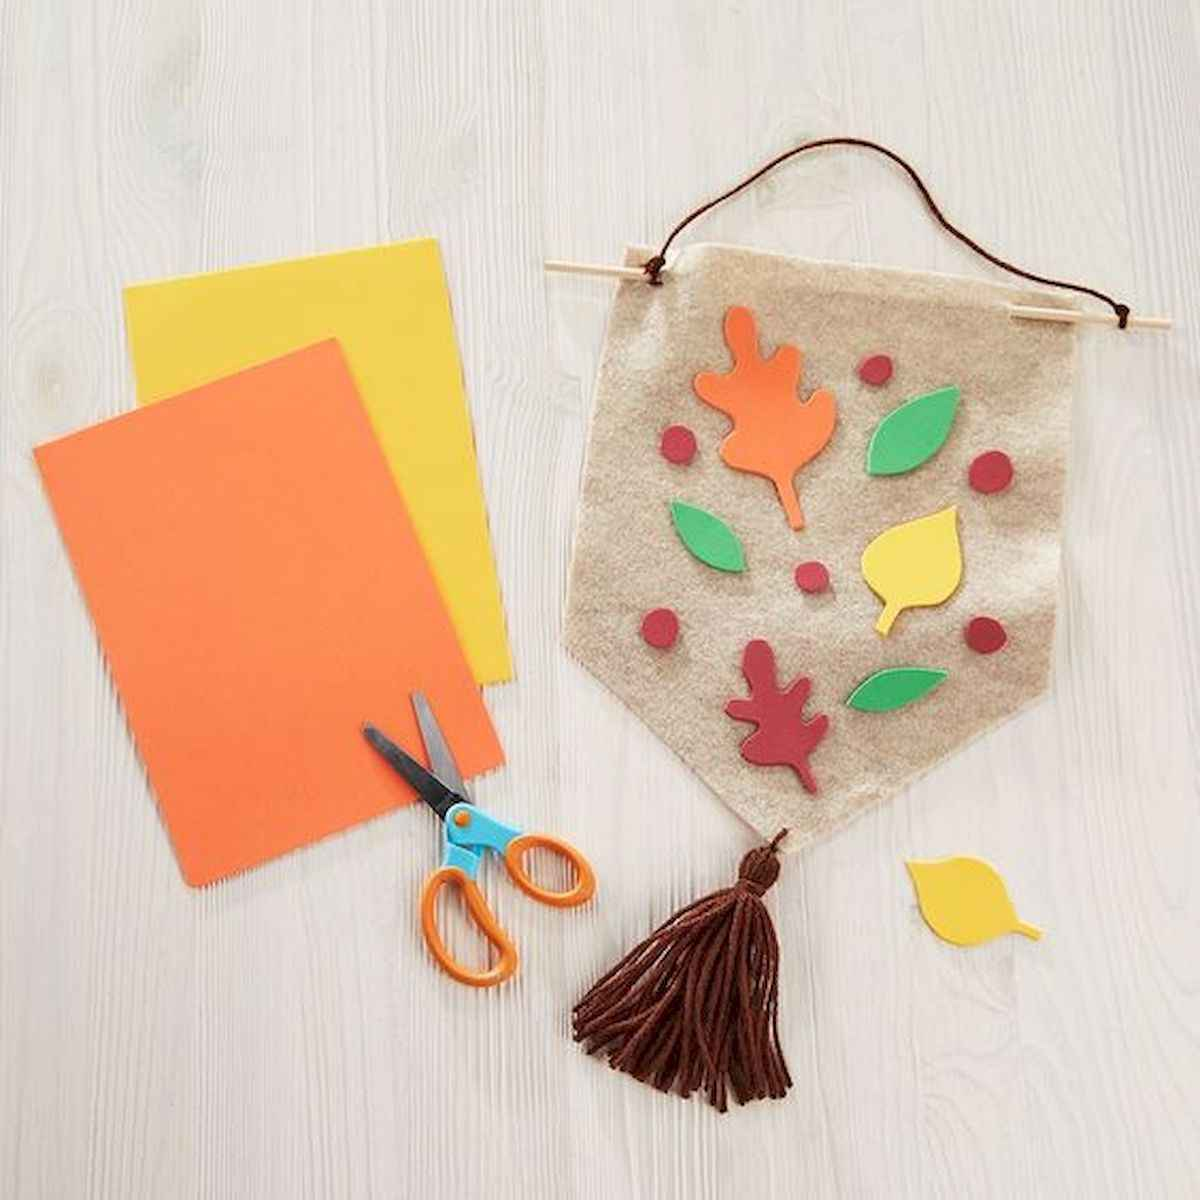 60 Fantastic DIY Projects Ideas For Kids (20)